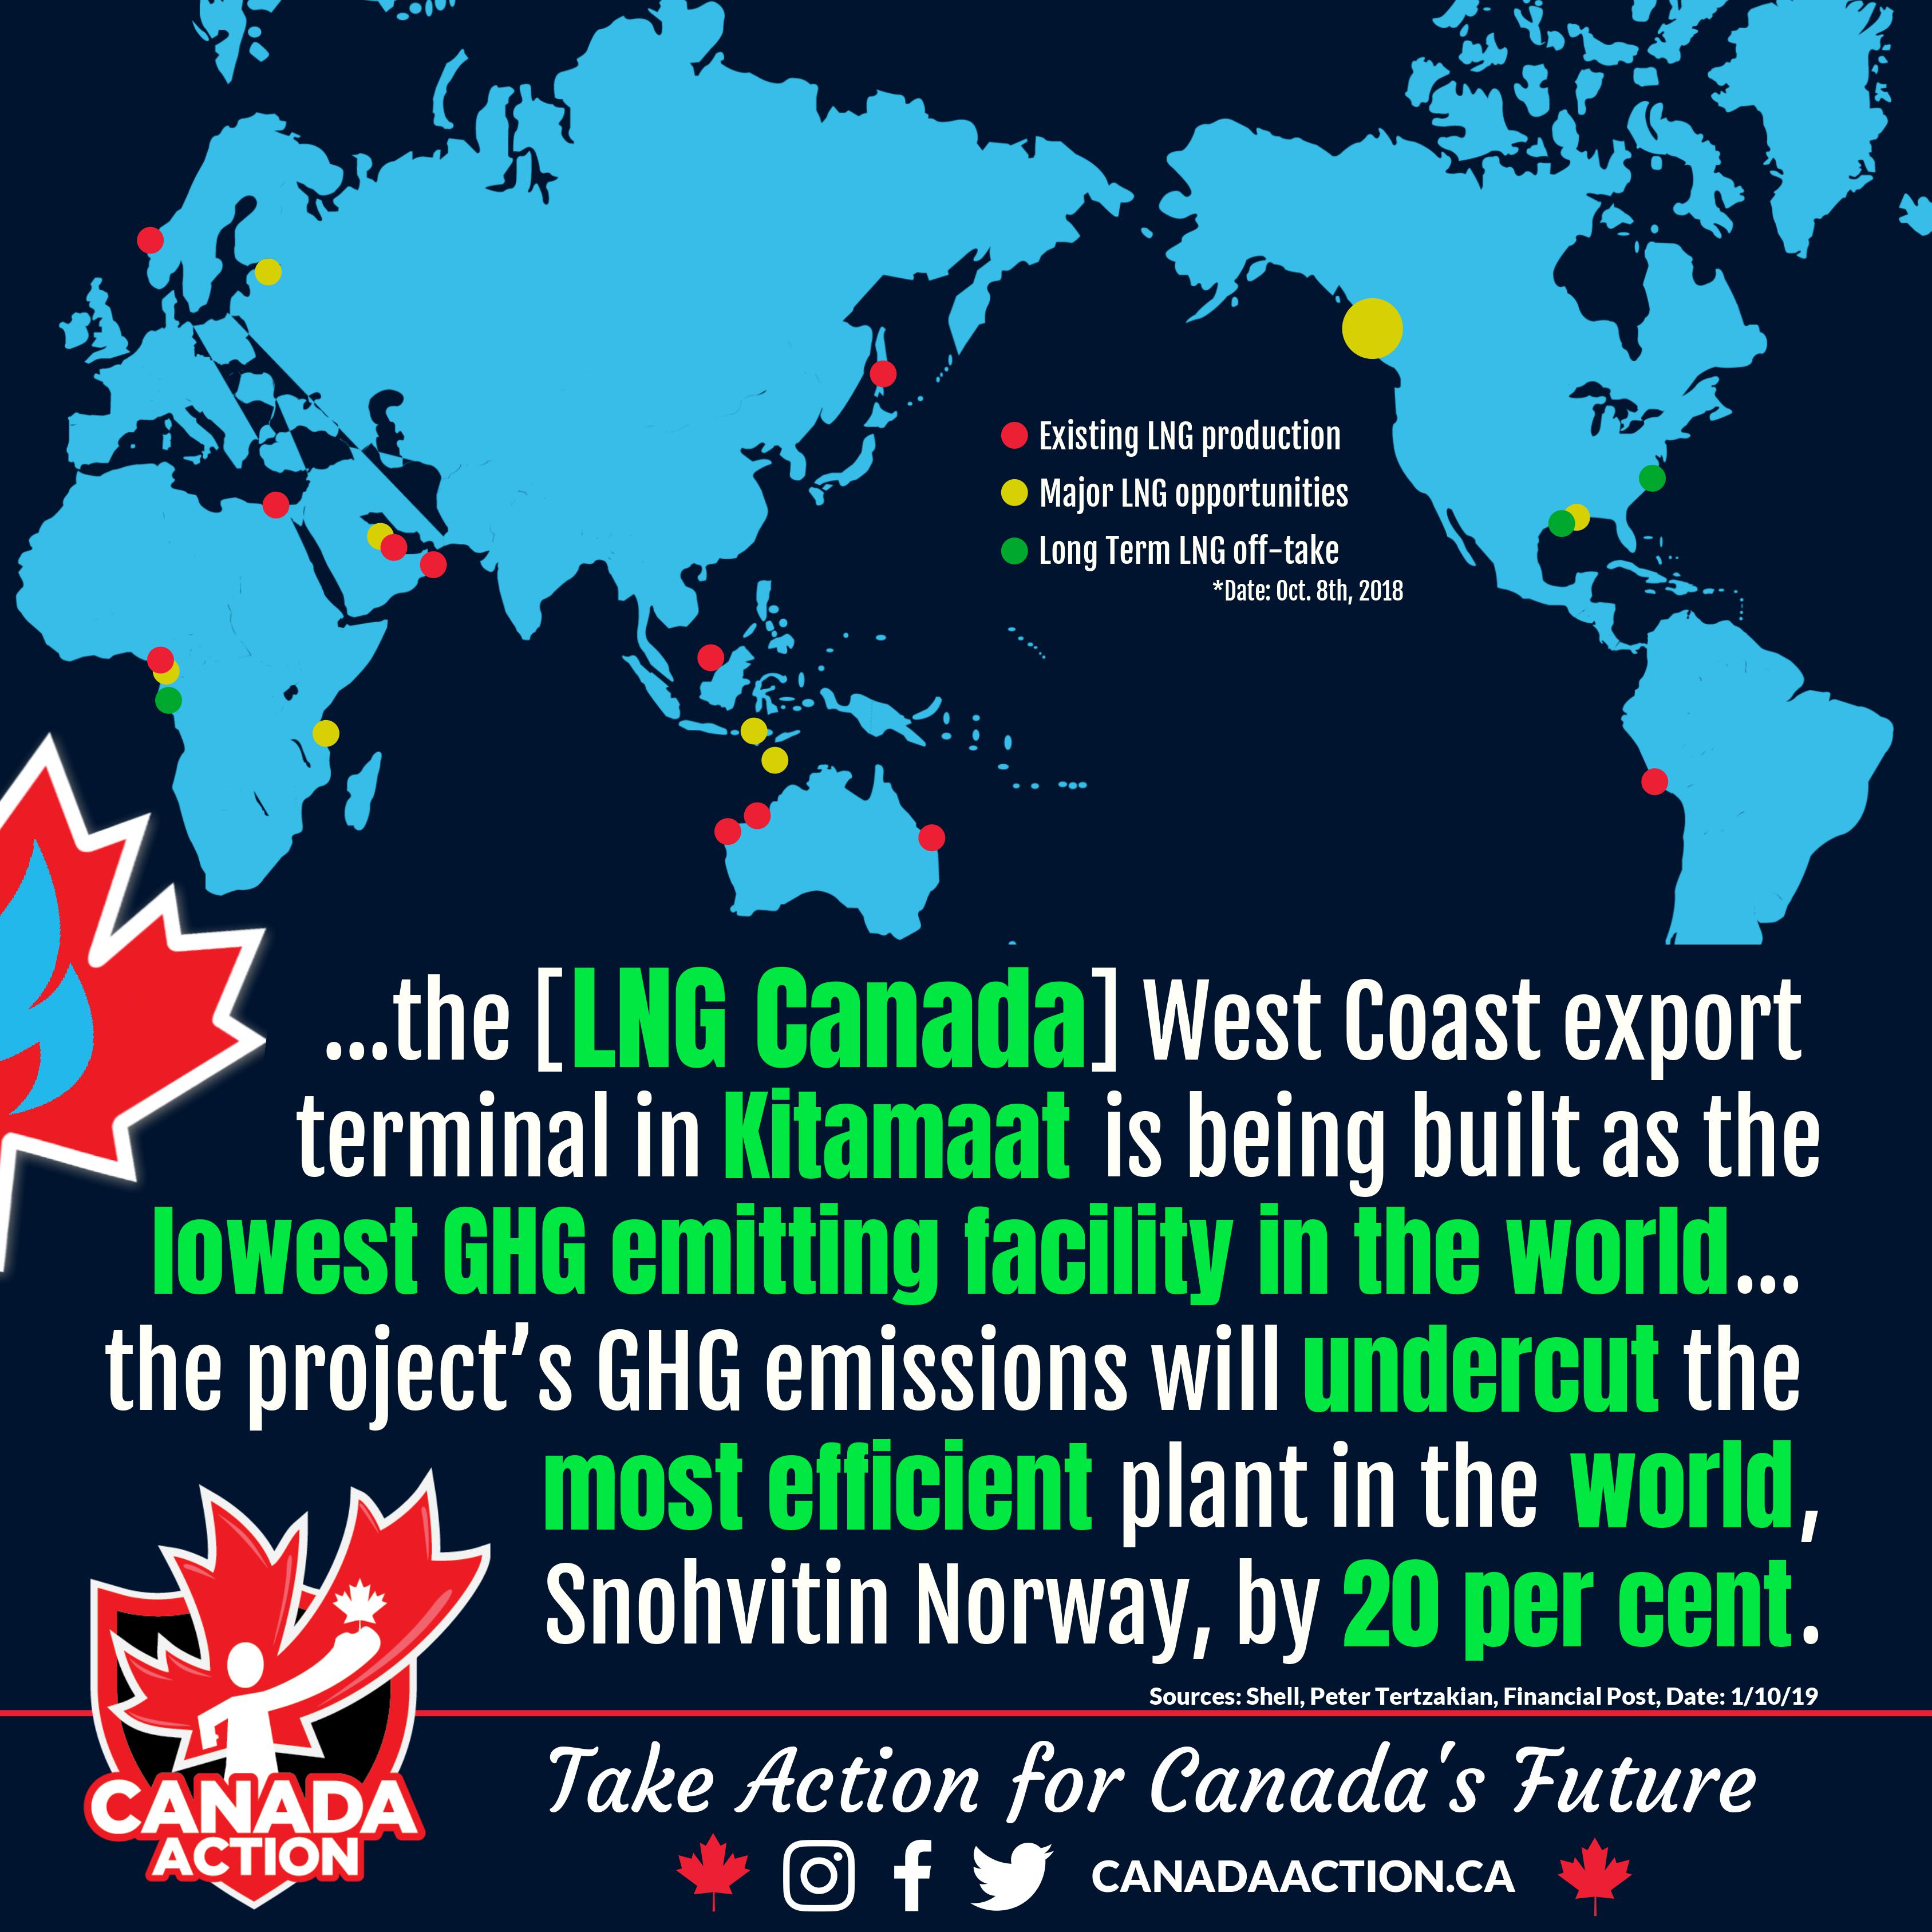 Canada LNG to be Lowest GHG Emitting Facility in the World